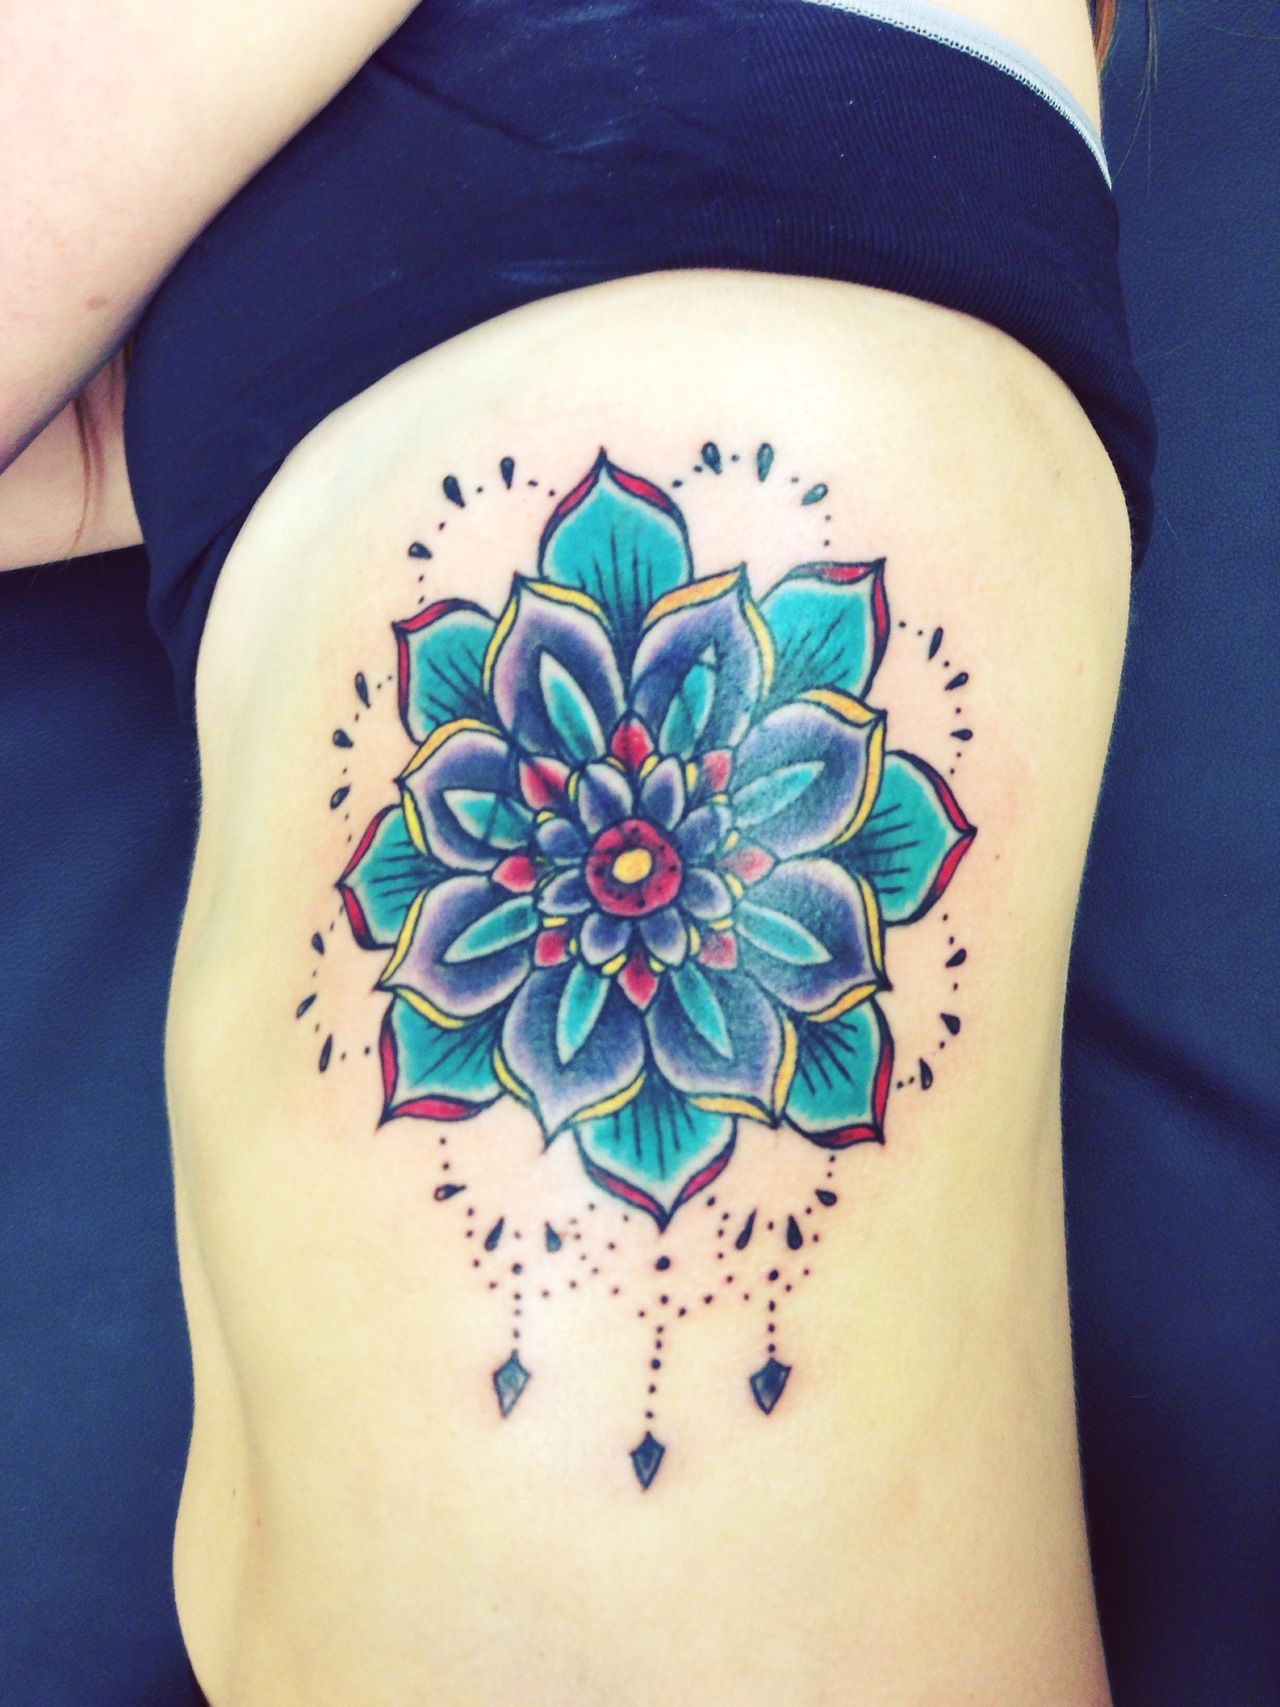 Dripping Mandala Side Tattoo Tattoos Pinterest Tattoos Lotus